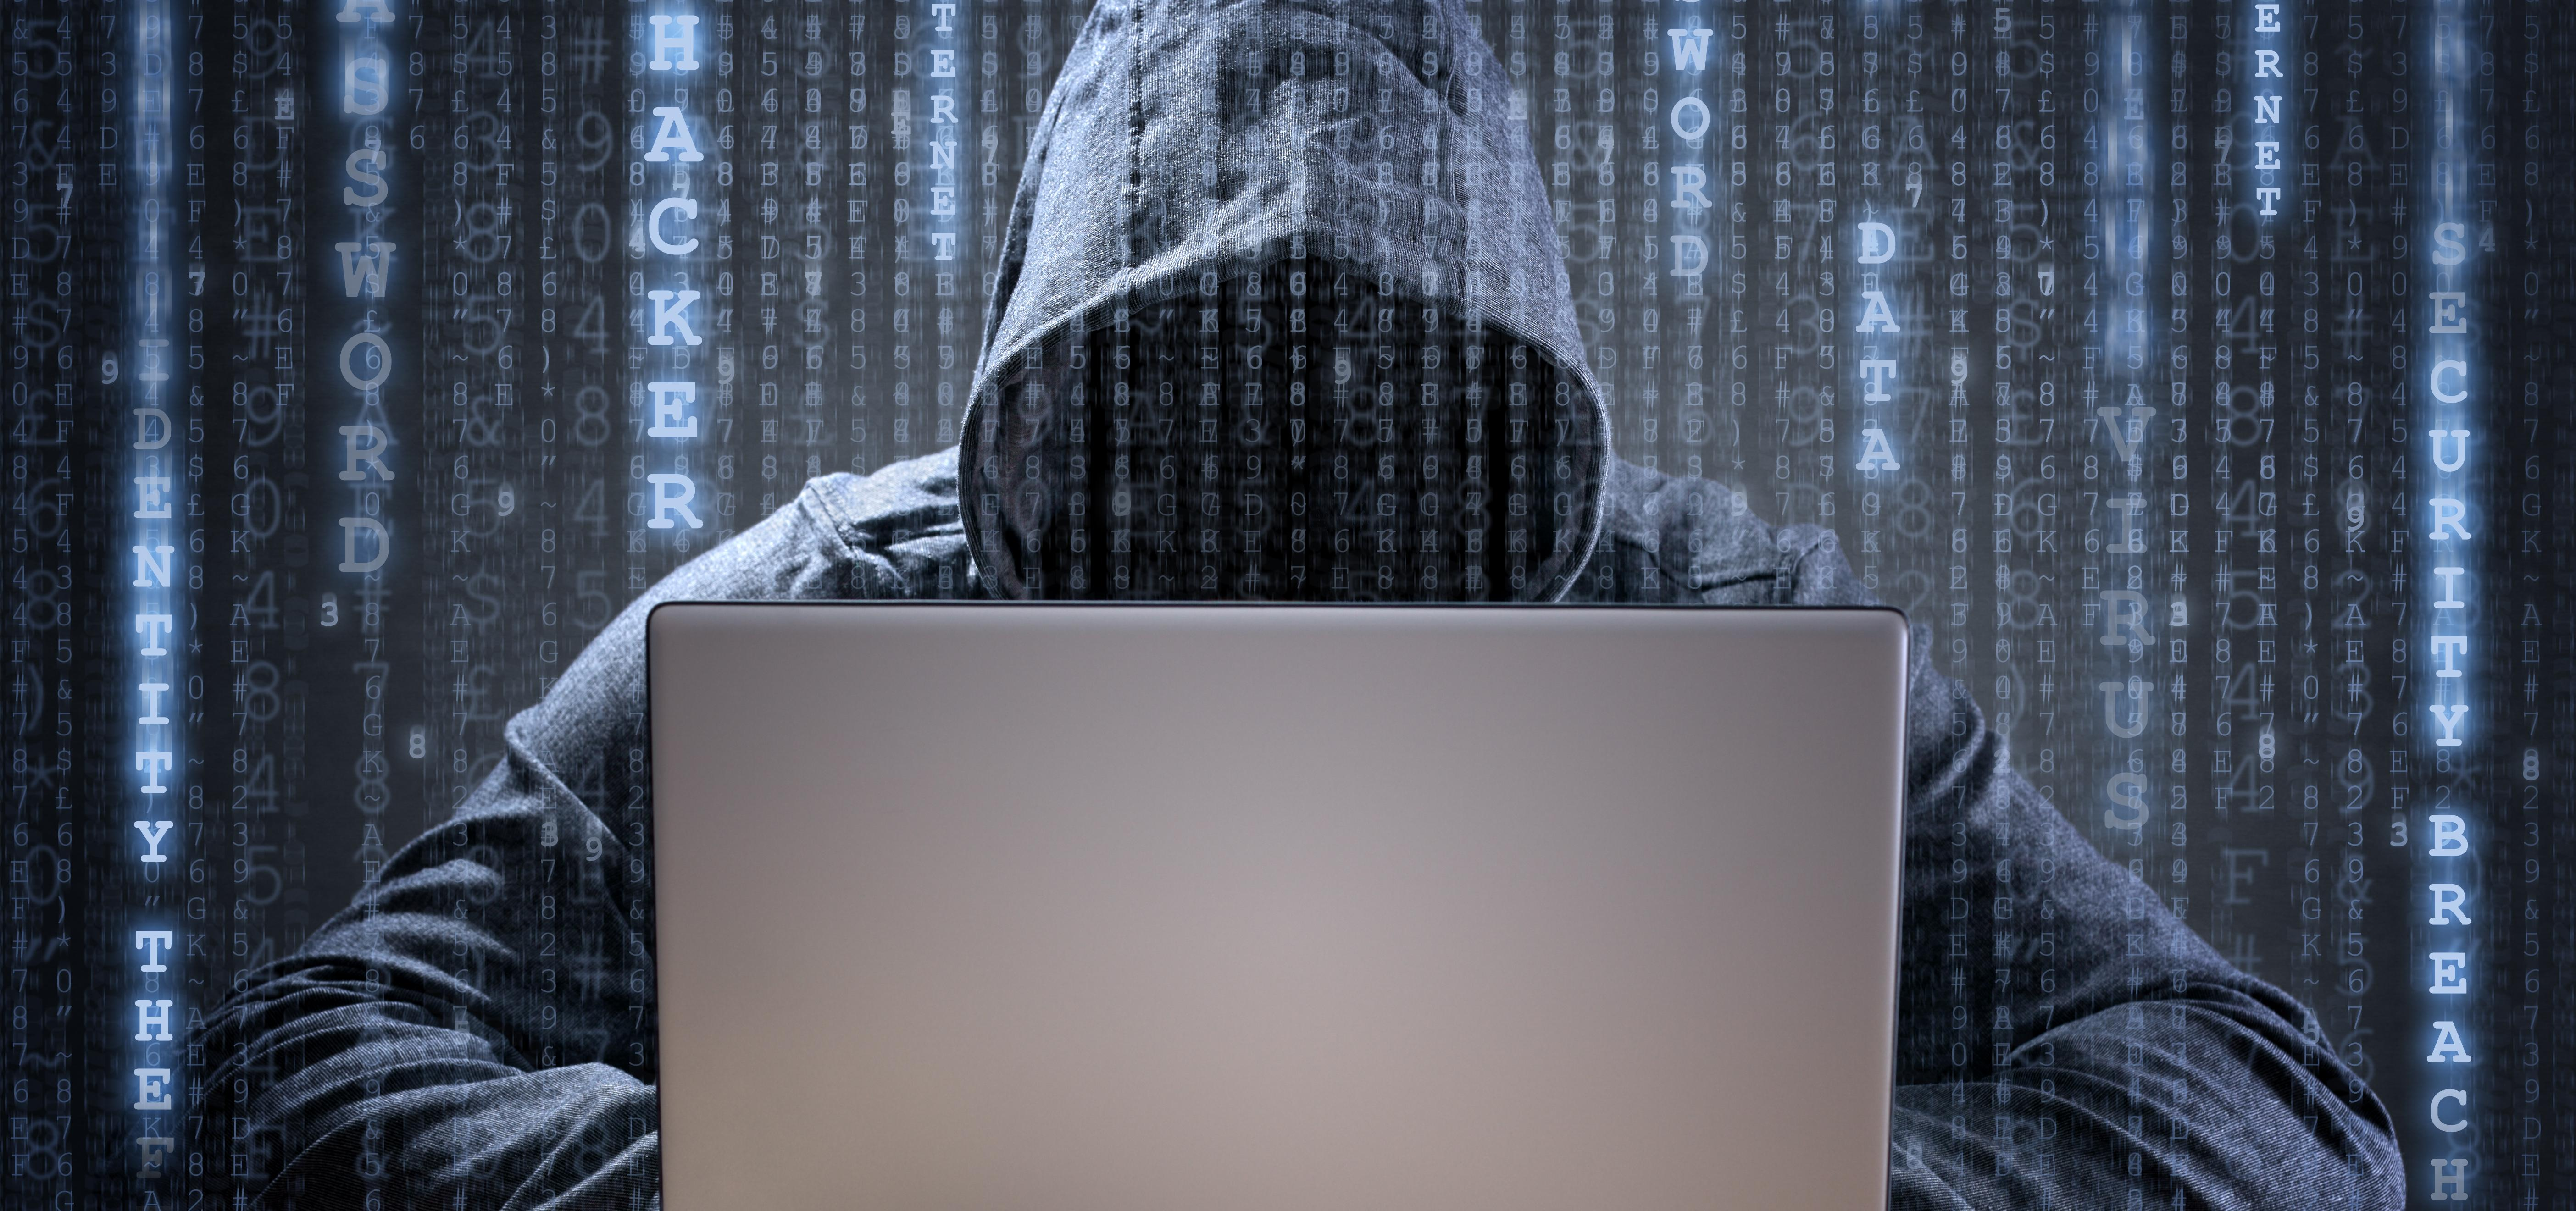 Cybersecurity Hd Computer 4k Wallpapers Images